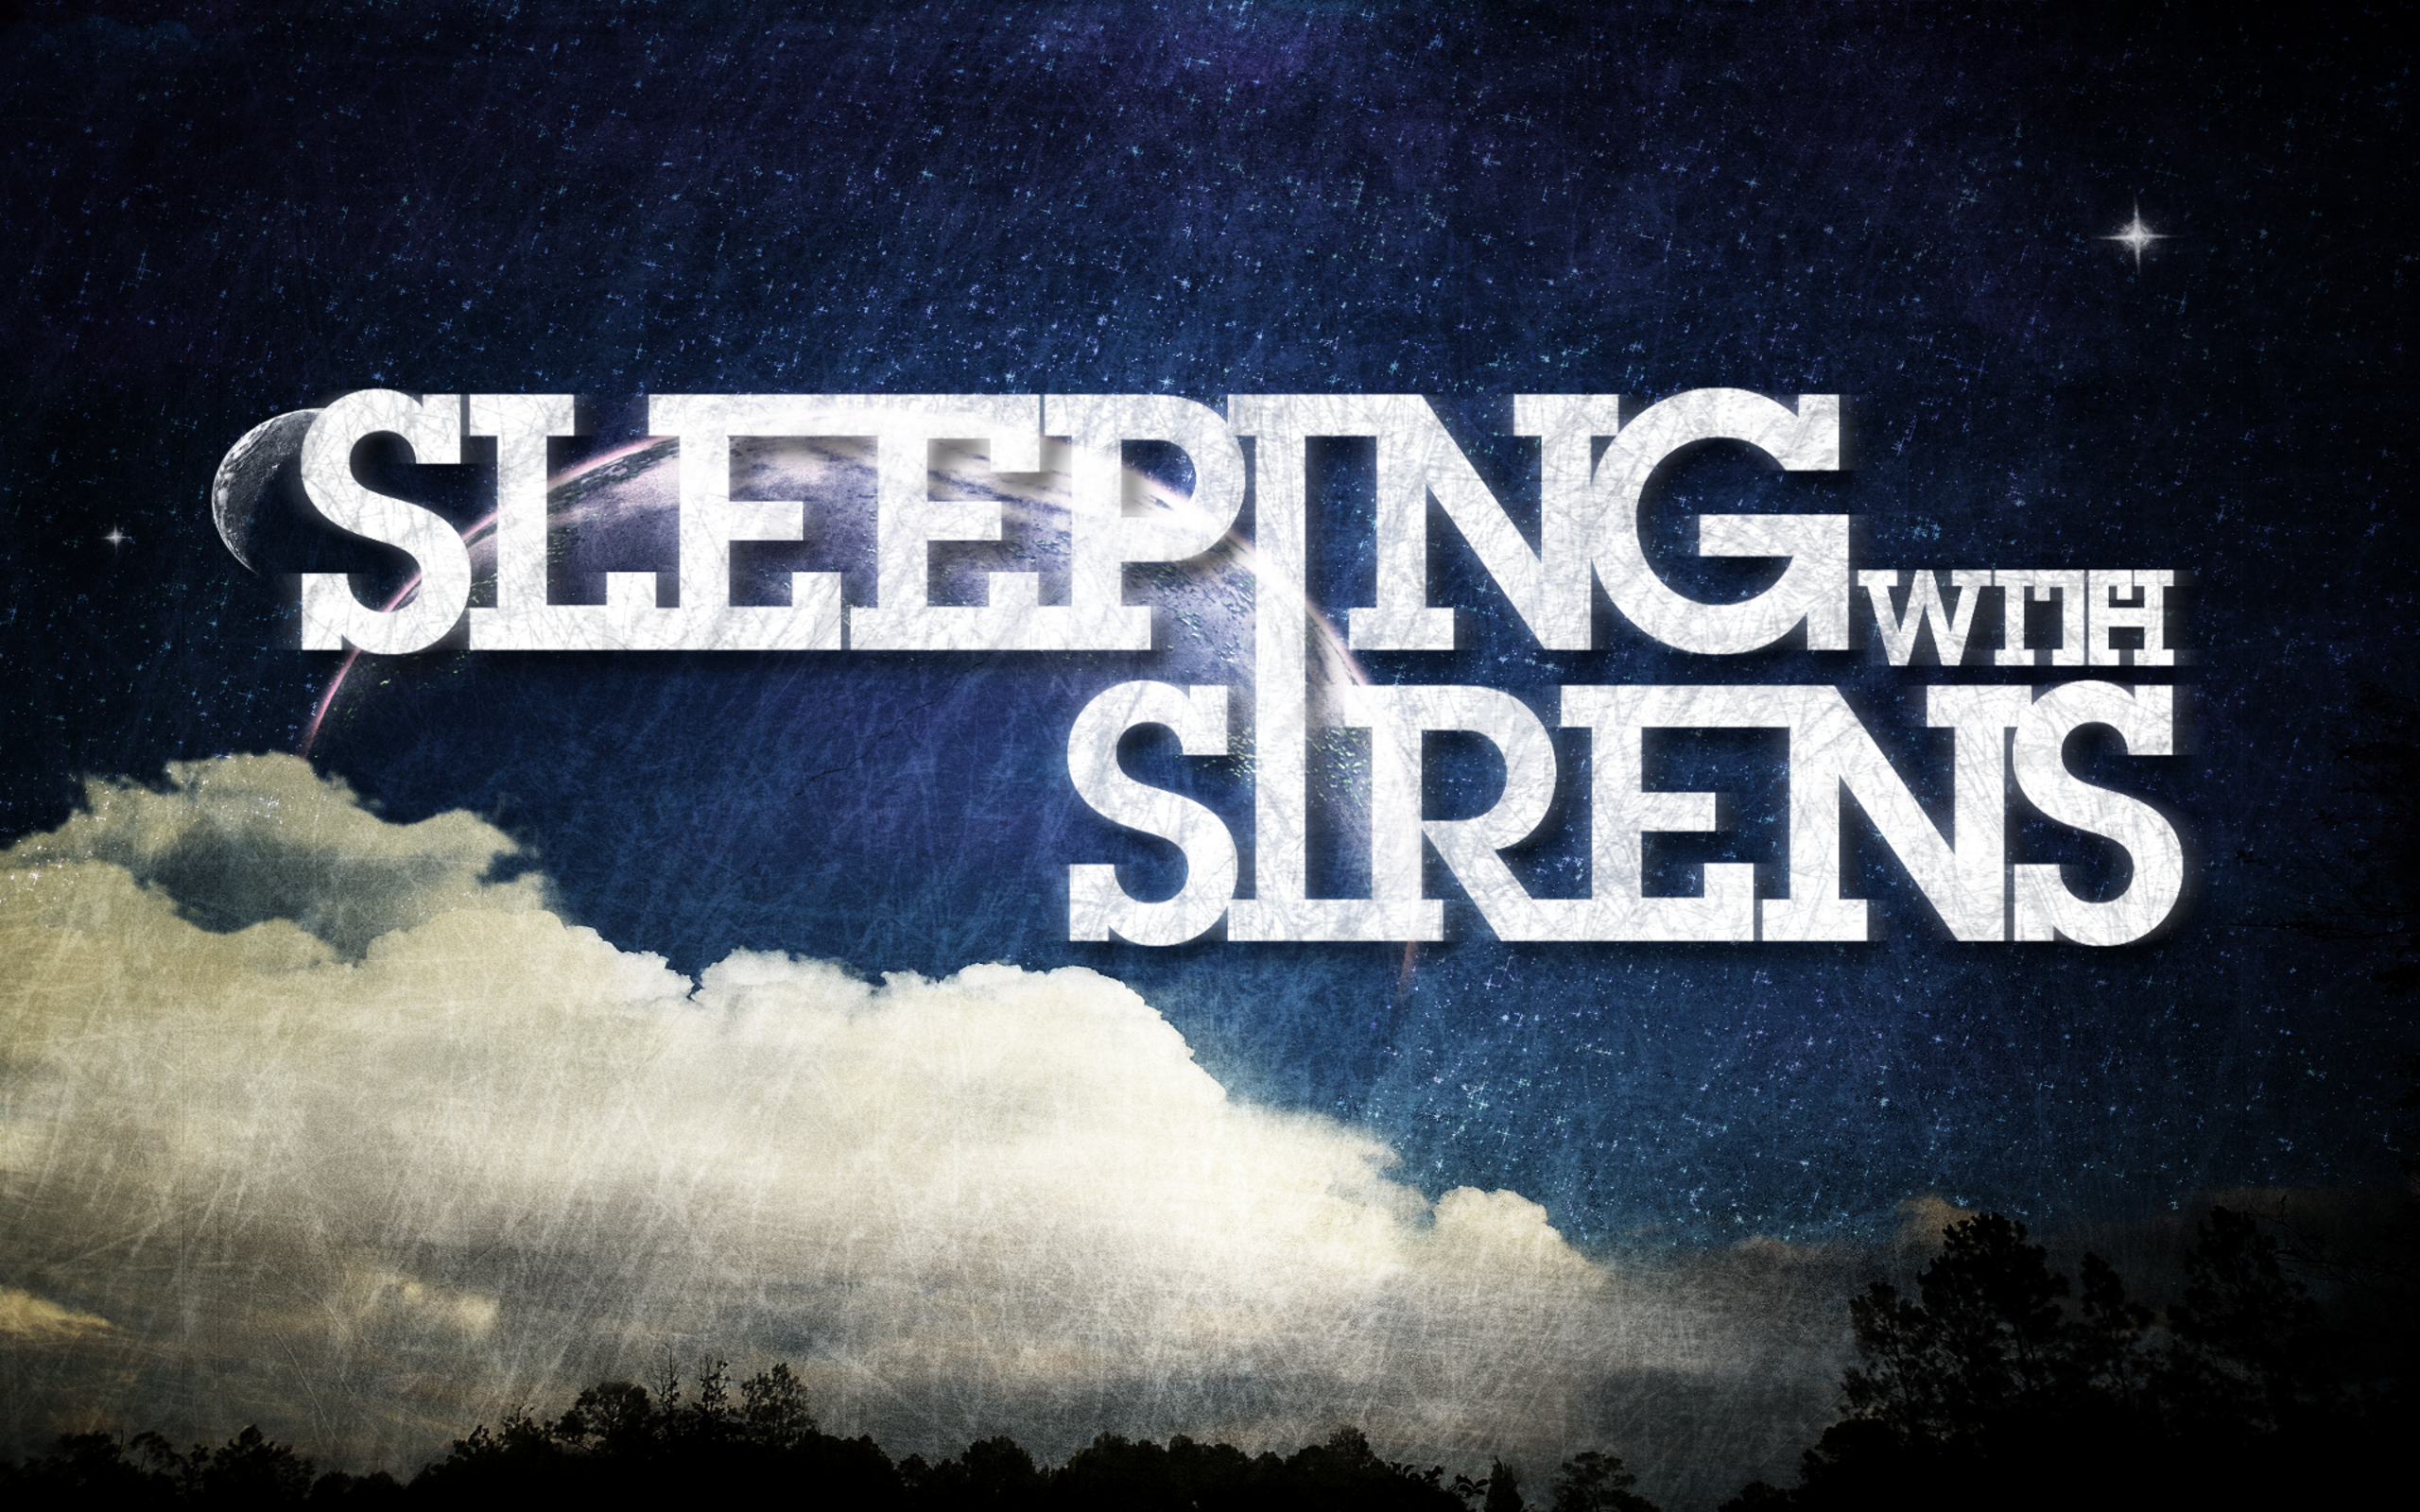 ... Sleeping with Sirens Wallpaper [w/Glow] by darkdissolution